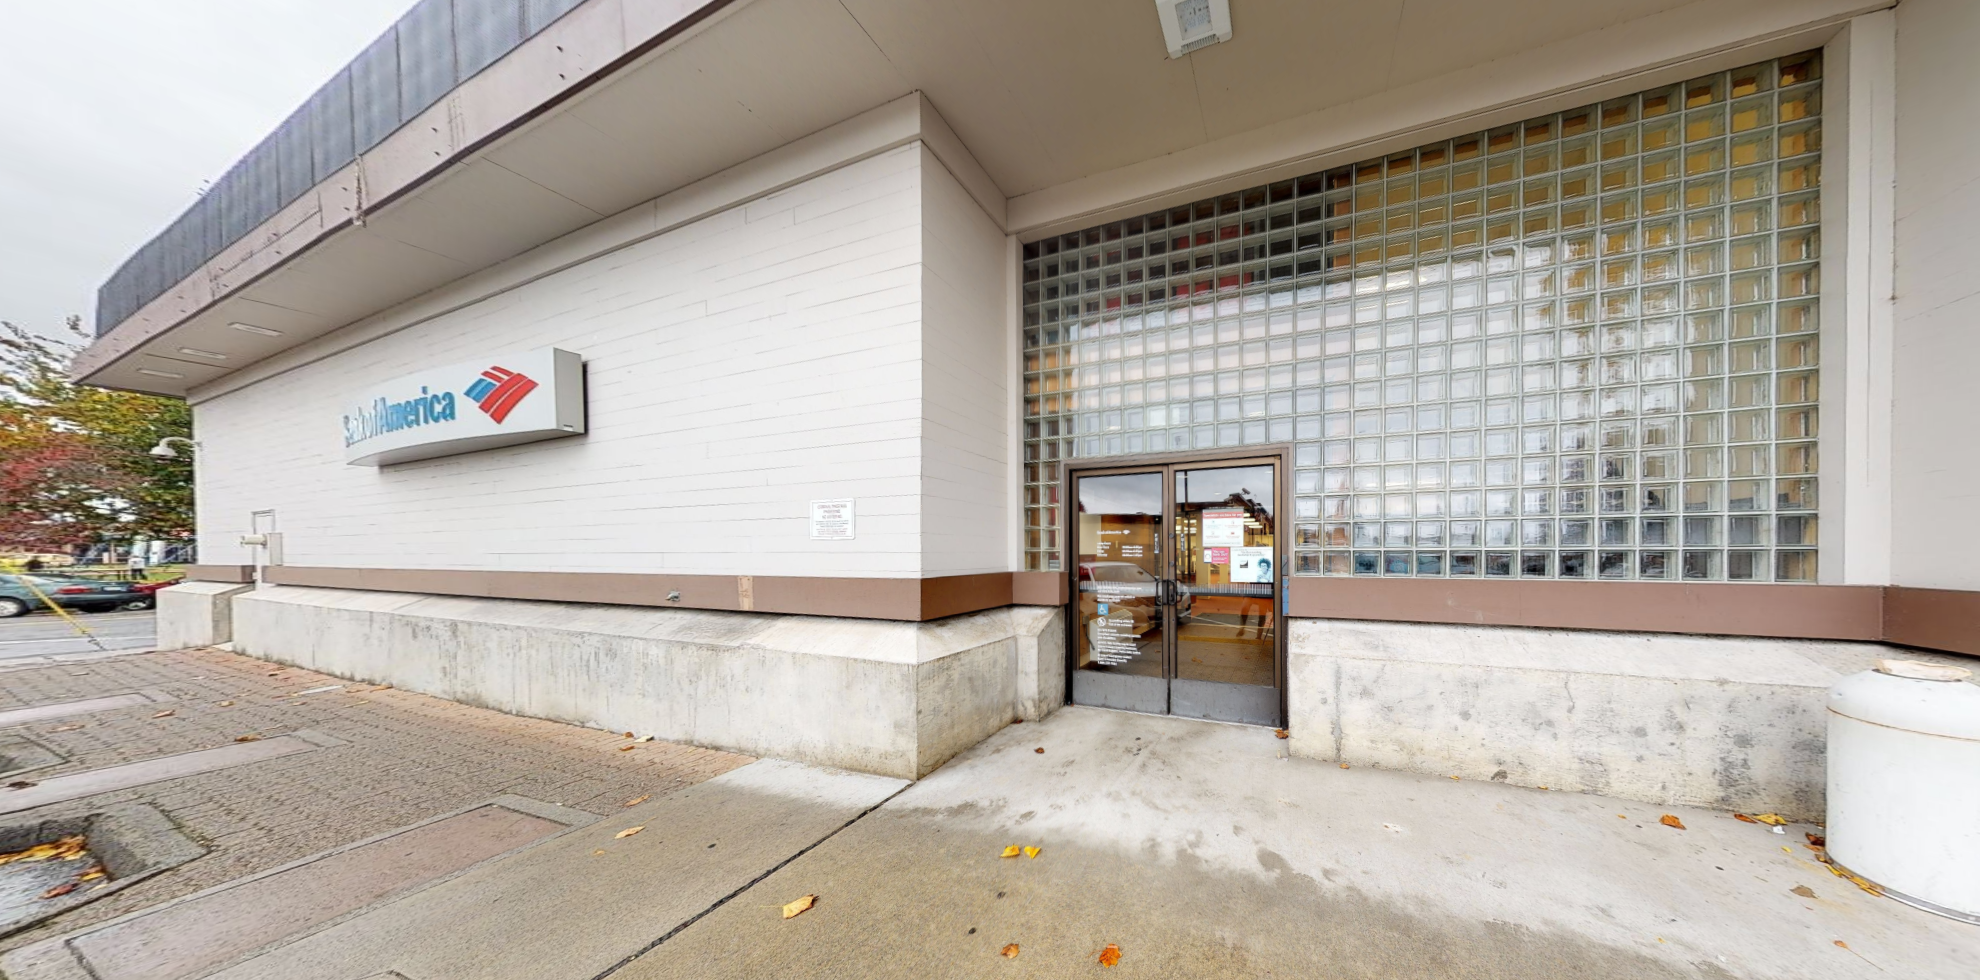 Bank of America financial center with drive-thru ATM | 415 State Ave, Marysville, WA 98270